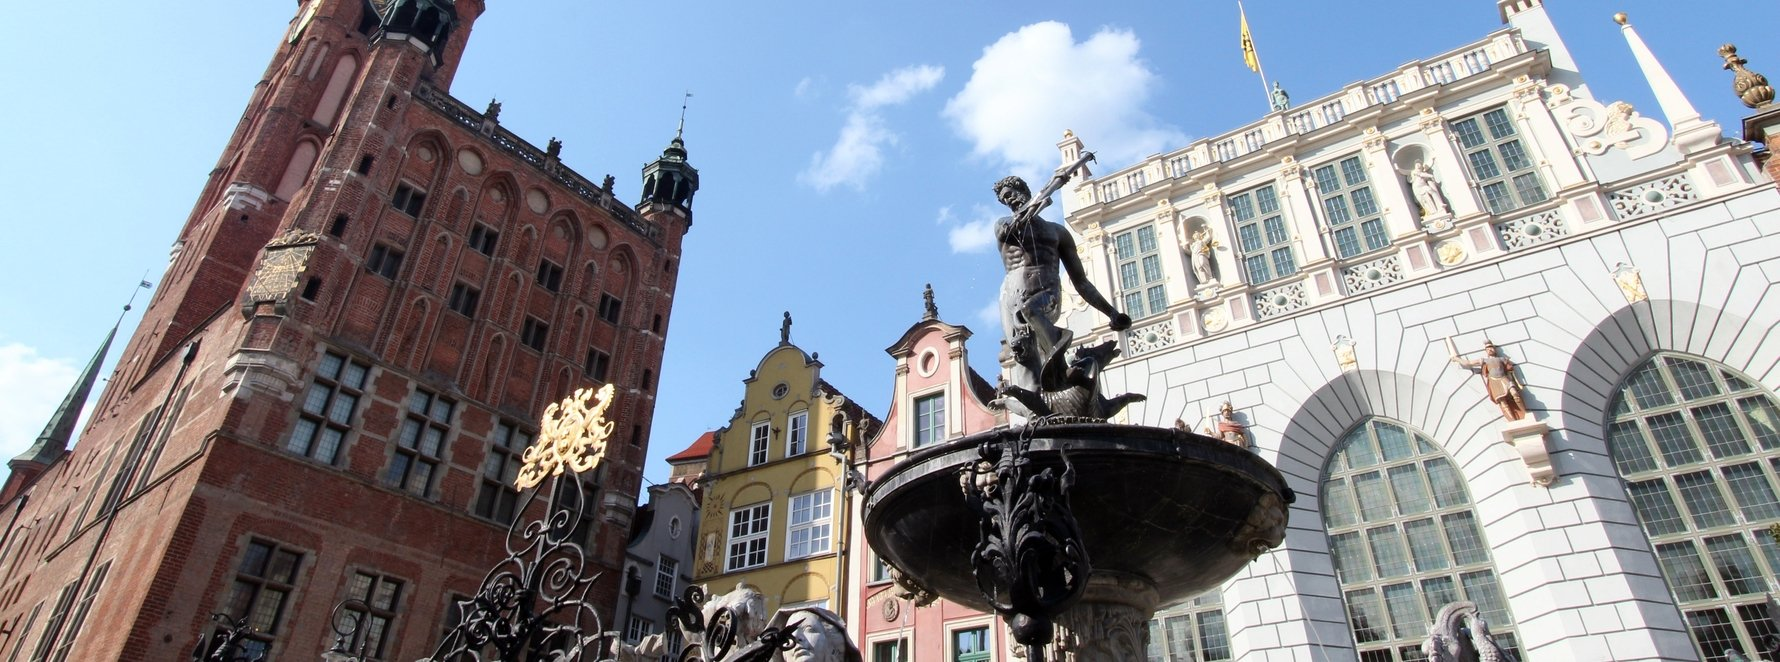 Neptune Fountain on Długi Targ in Gdańsk Old Town